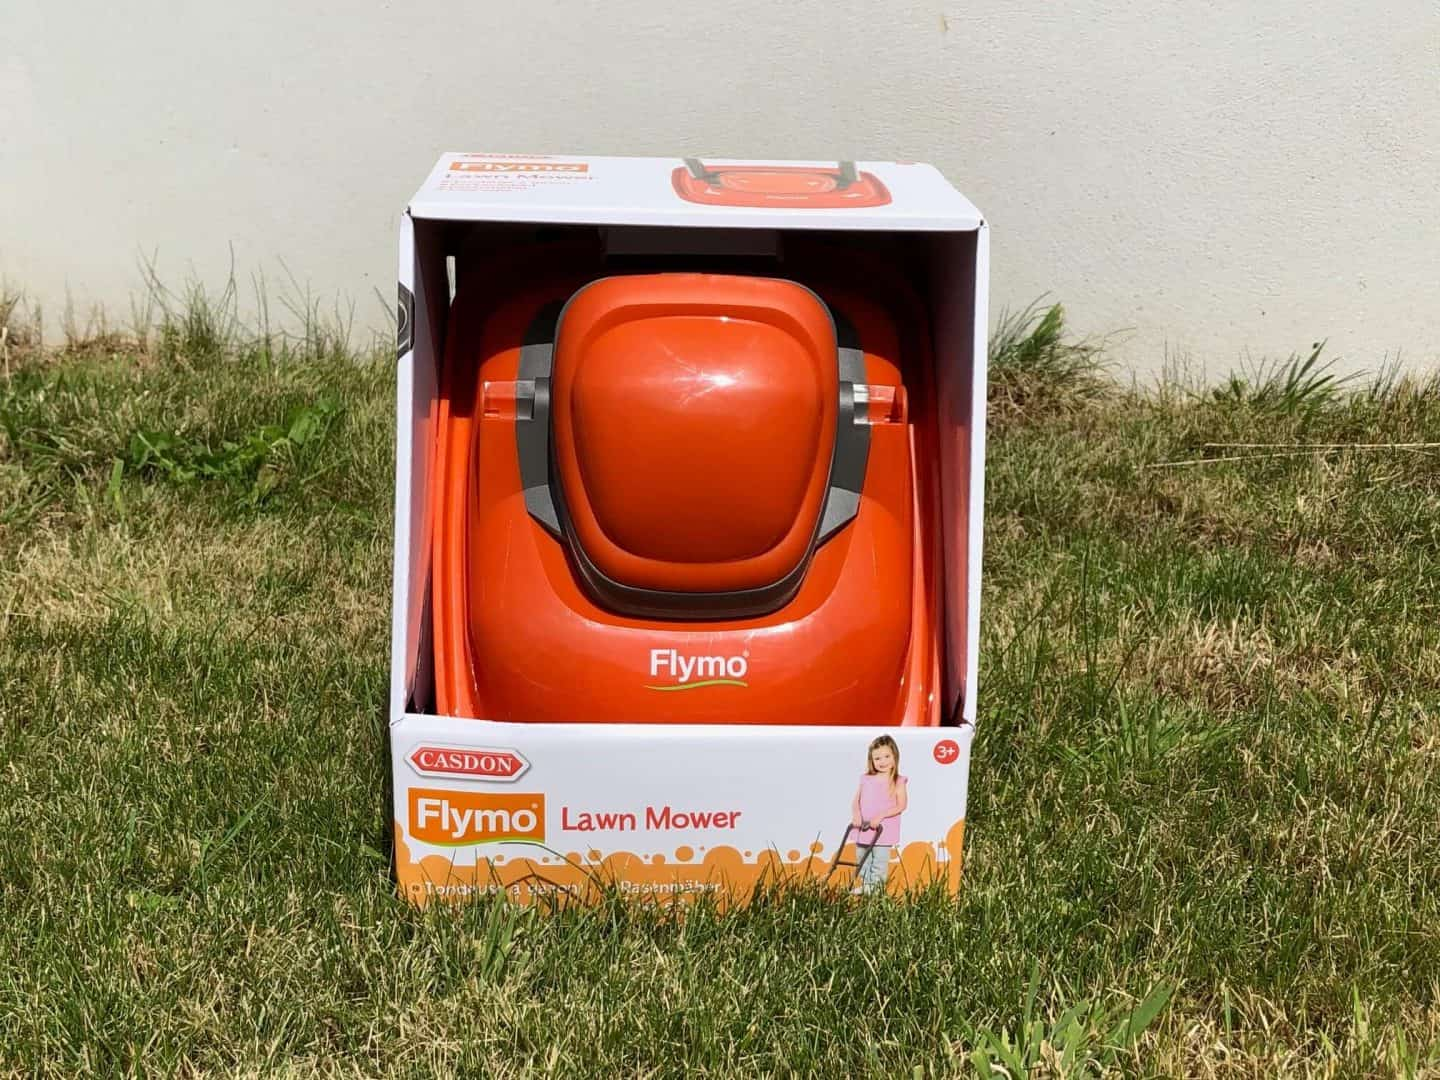 Mowing The Lawn With Casdon Flymo - Review